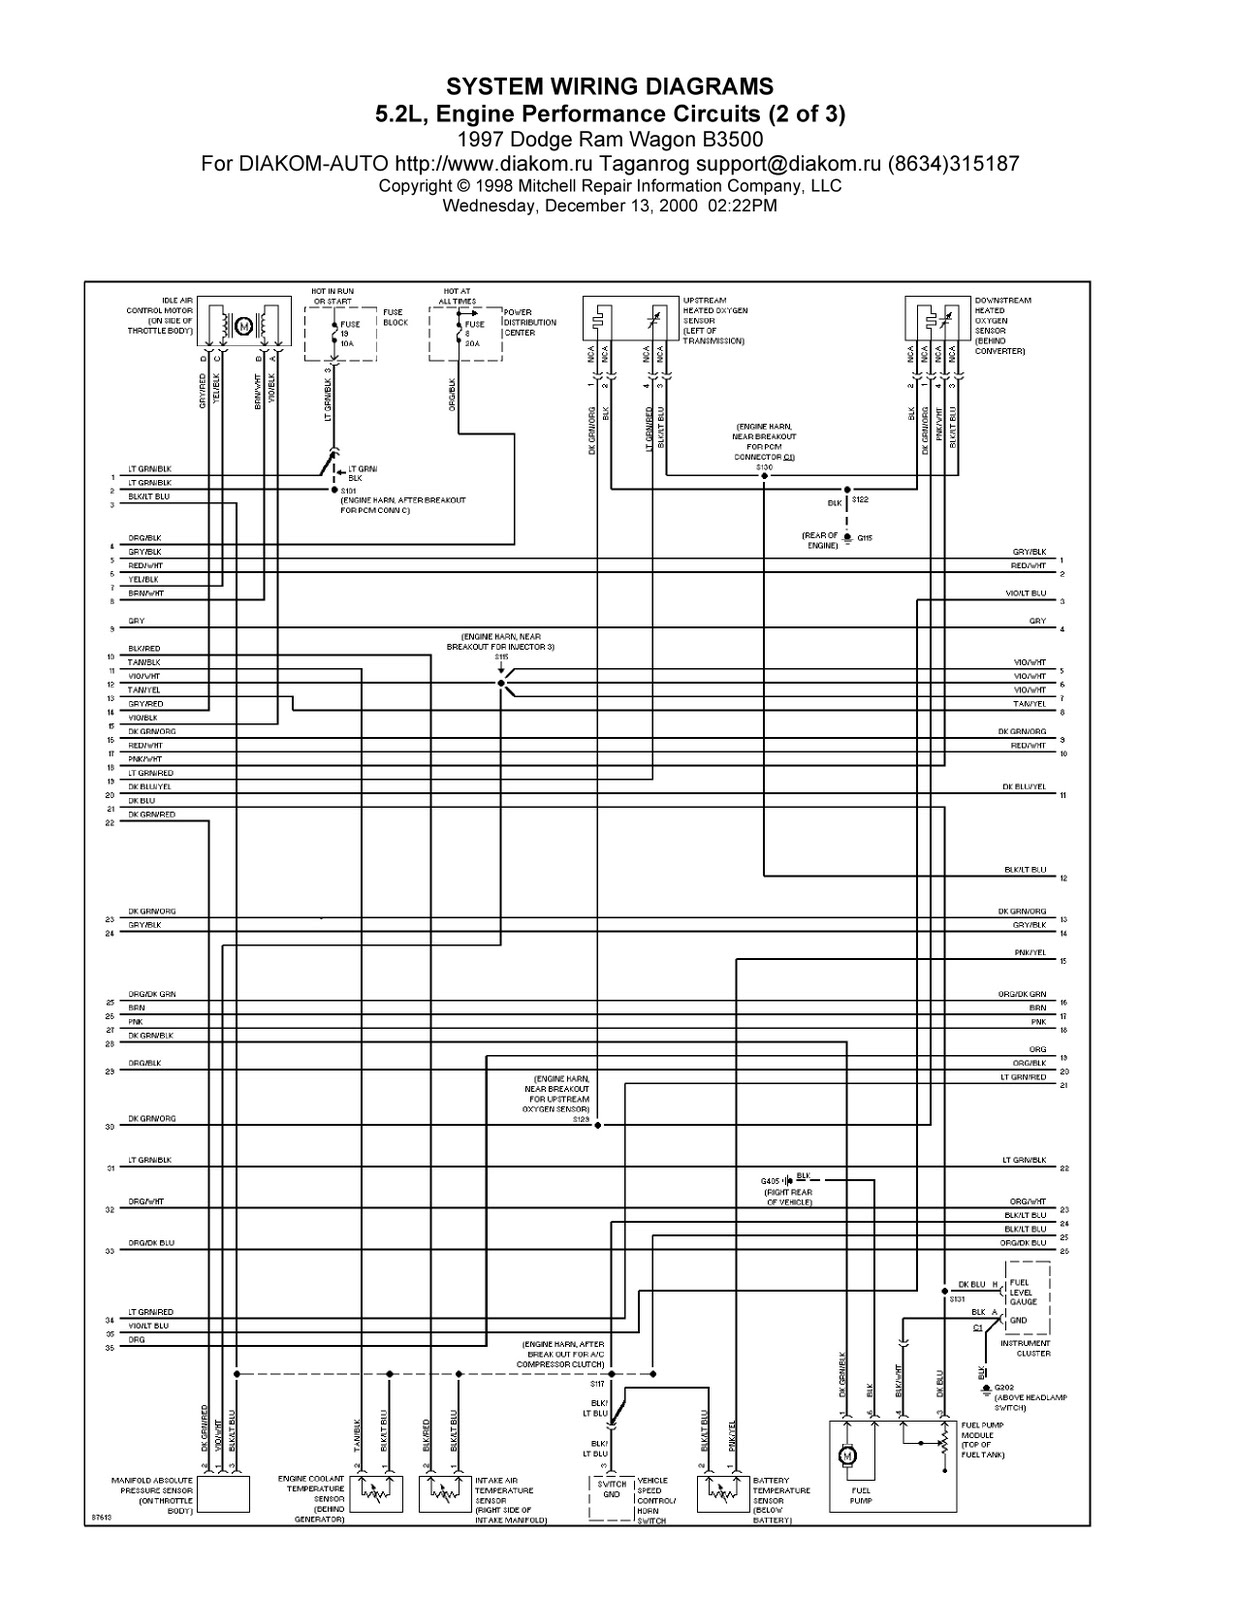 97 Dodge Ram Wiring Diagram Free For You 1997 Caravan Diagrams Wagon B3500 System 5 2l Diesel